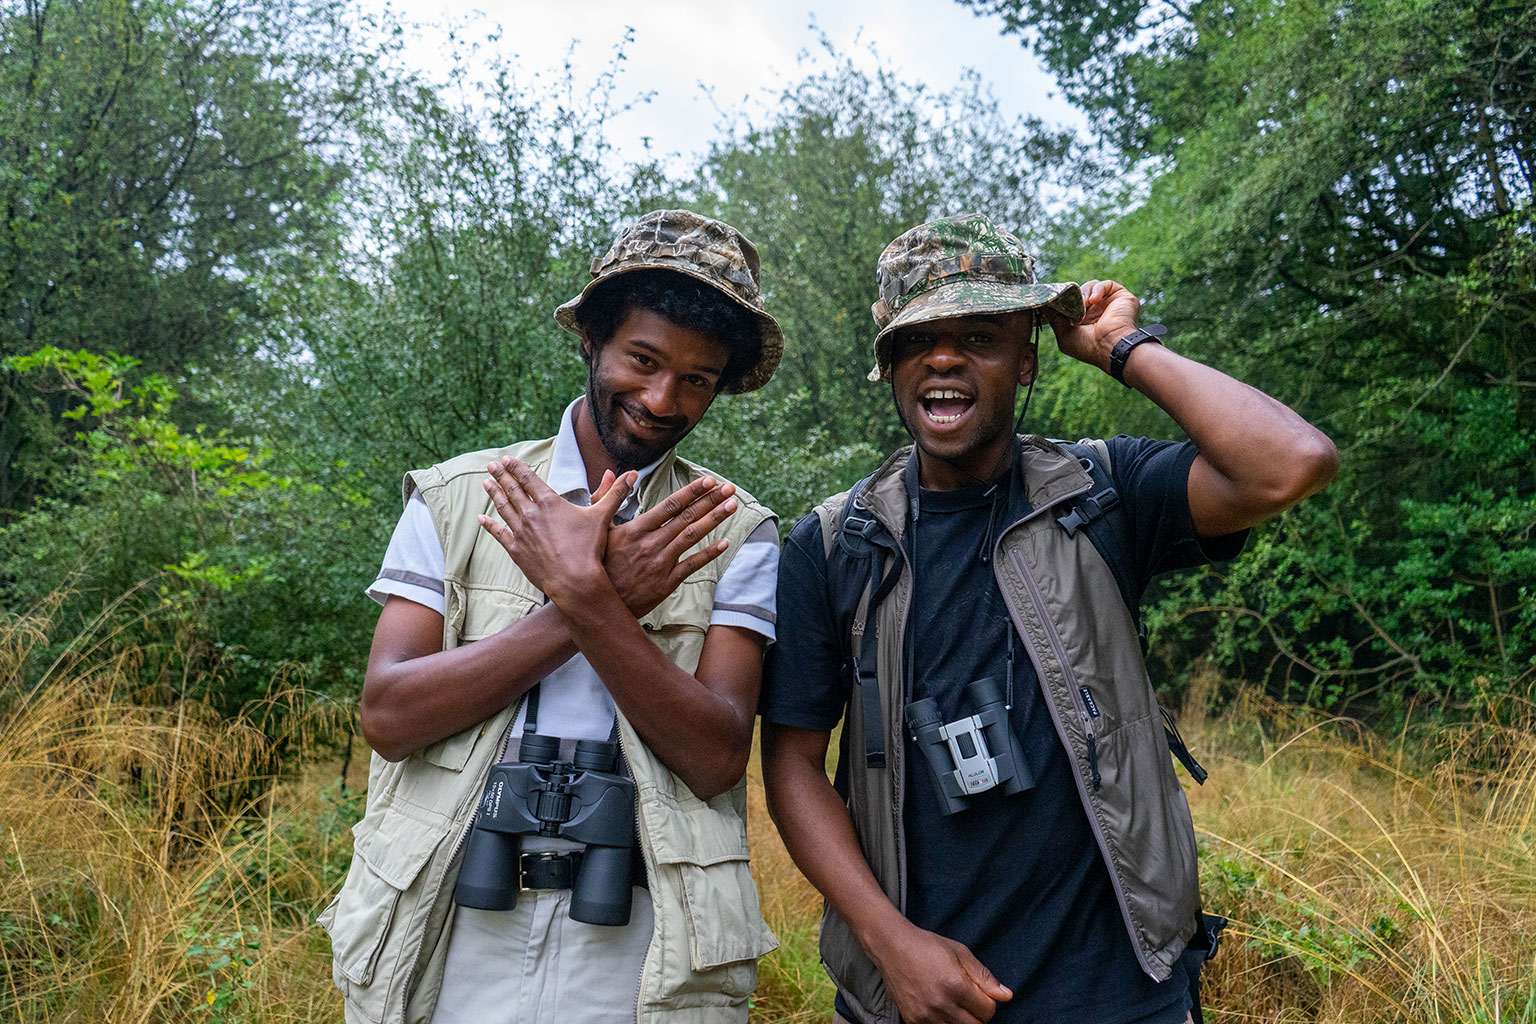 A photo in a woodland setting of Flock Together founders – Ollie Olanipekun and Nadeem Perera.